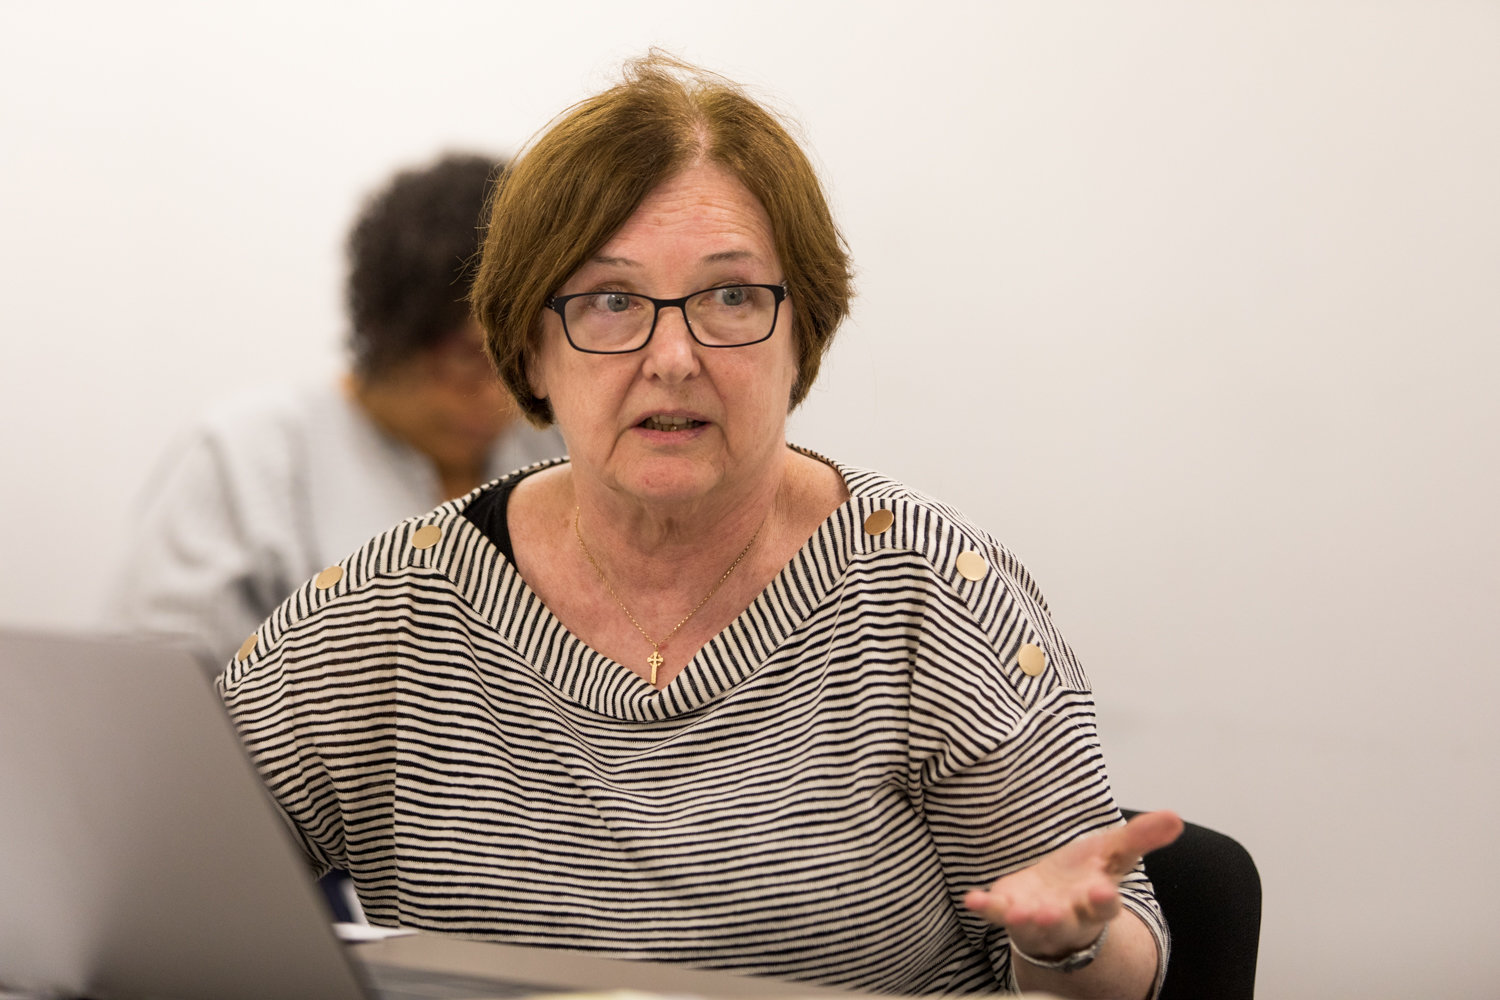 Former Community Board 8 chair Rosemary Ginty fears Stagg Group might bring in another temporary homeless transitional facility, preferring instead to have a 'permanent' one.